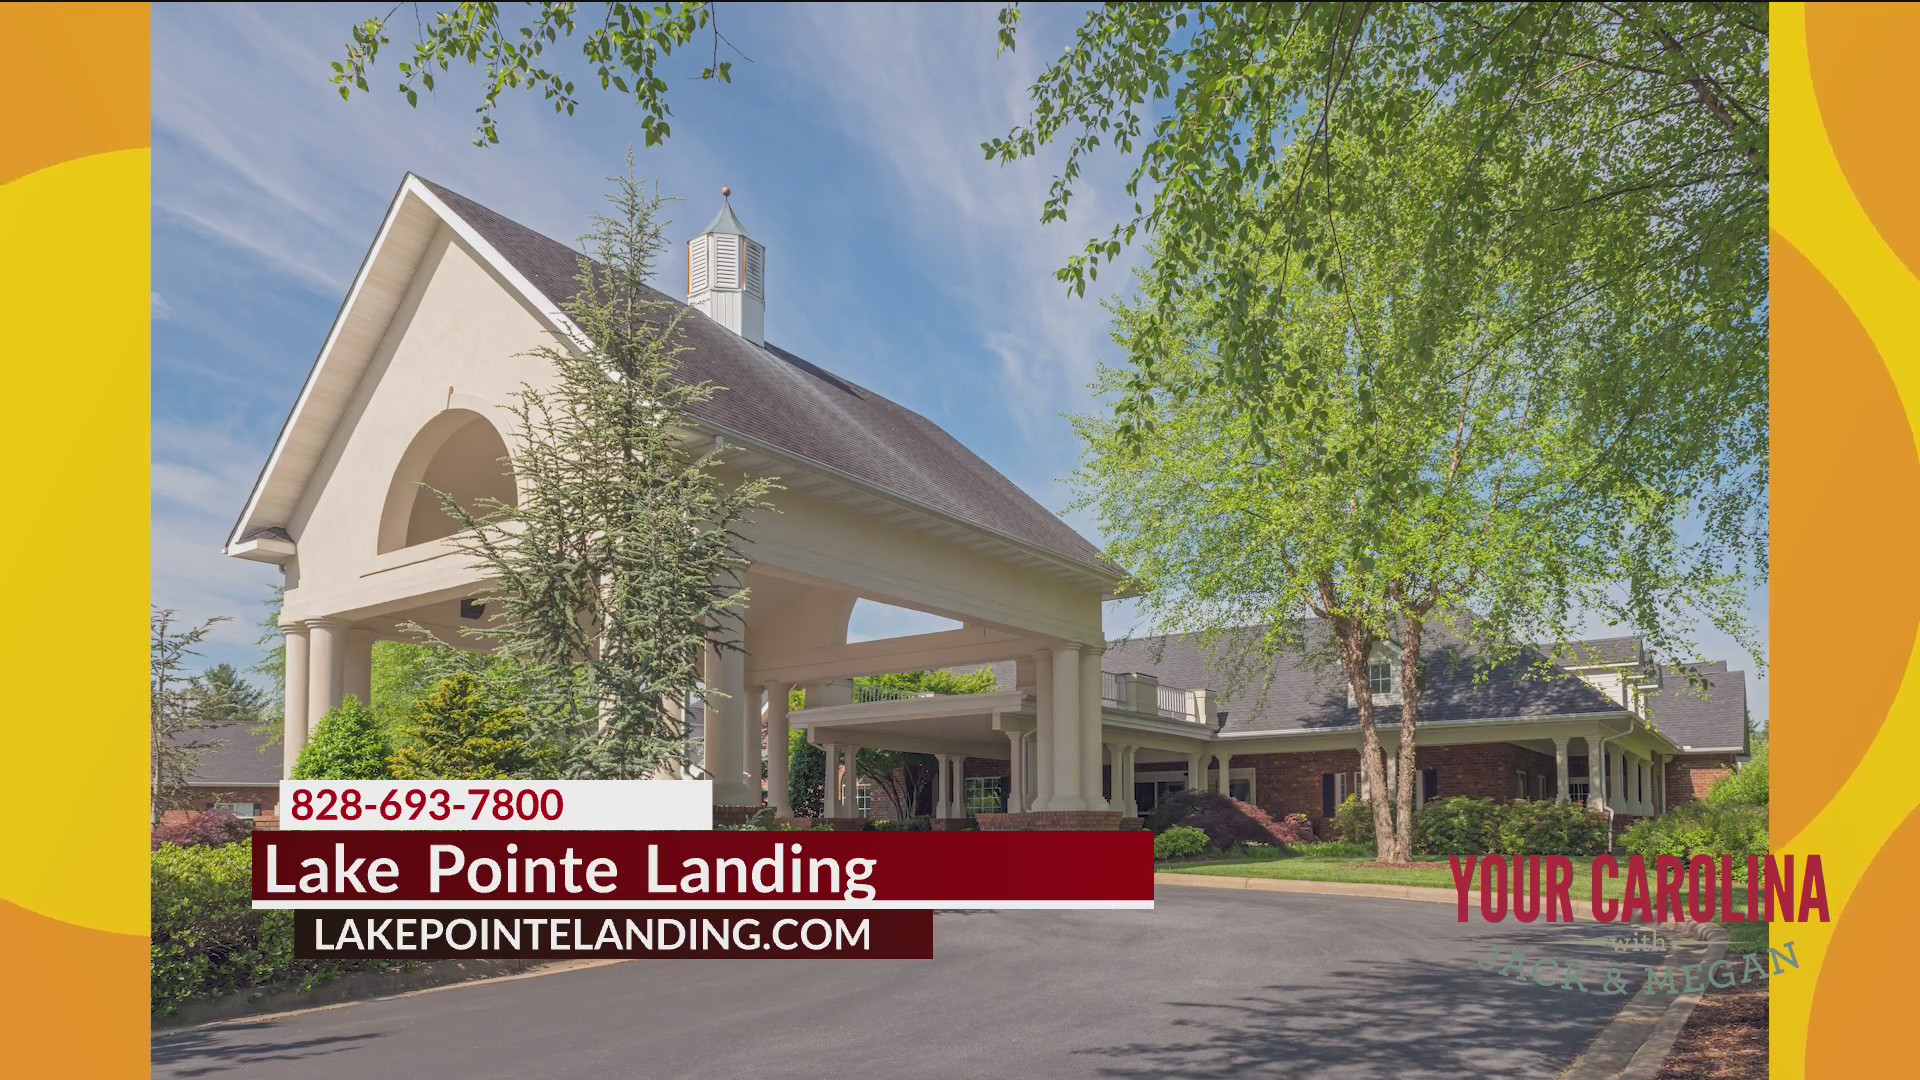 Retirement Lifestyle at Lake Pointe Landing